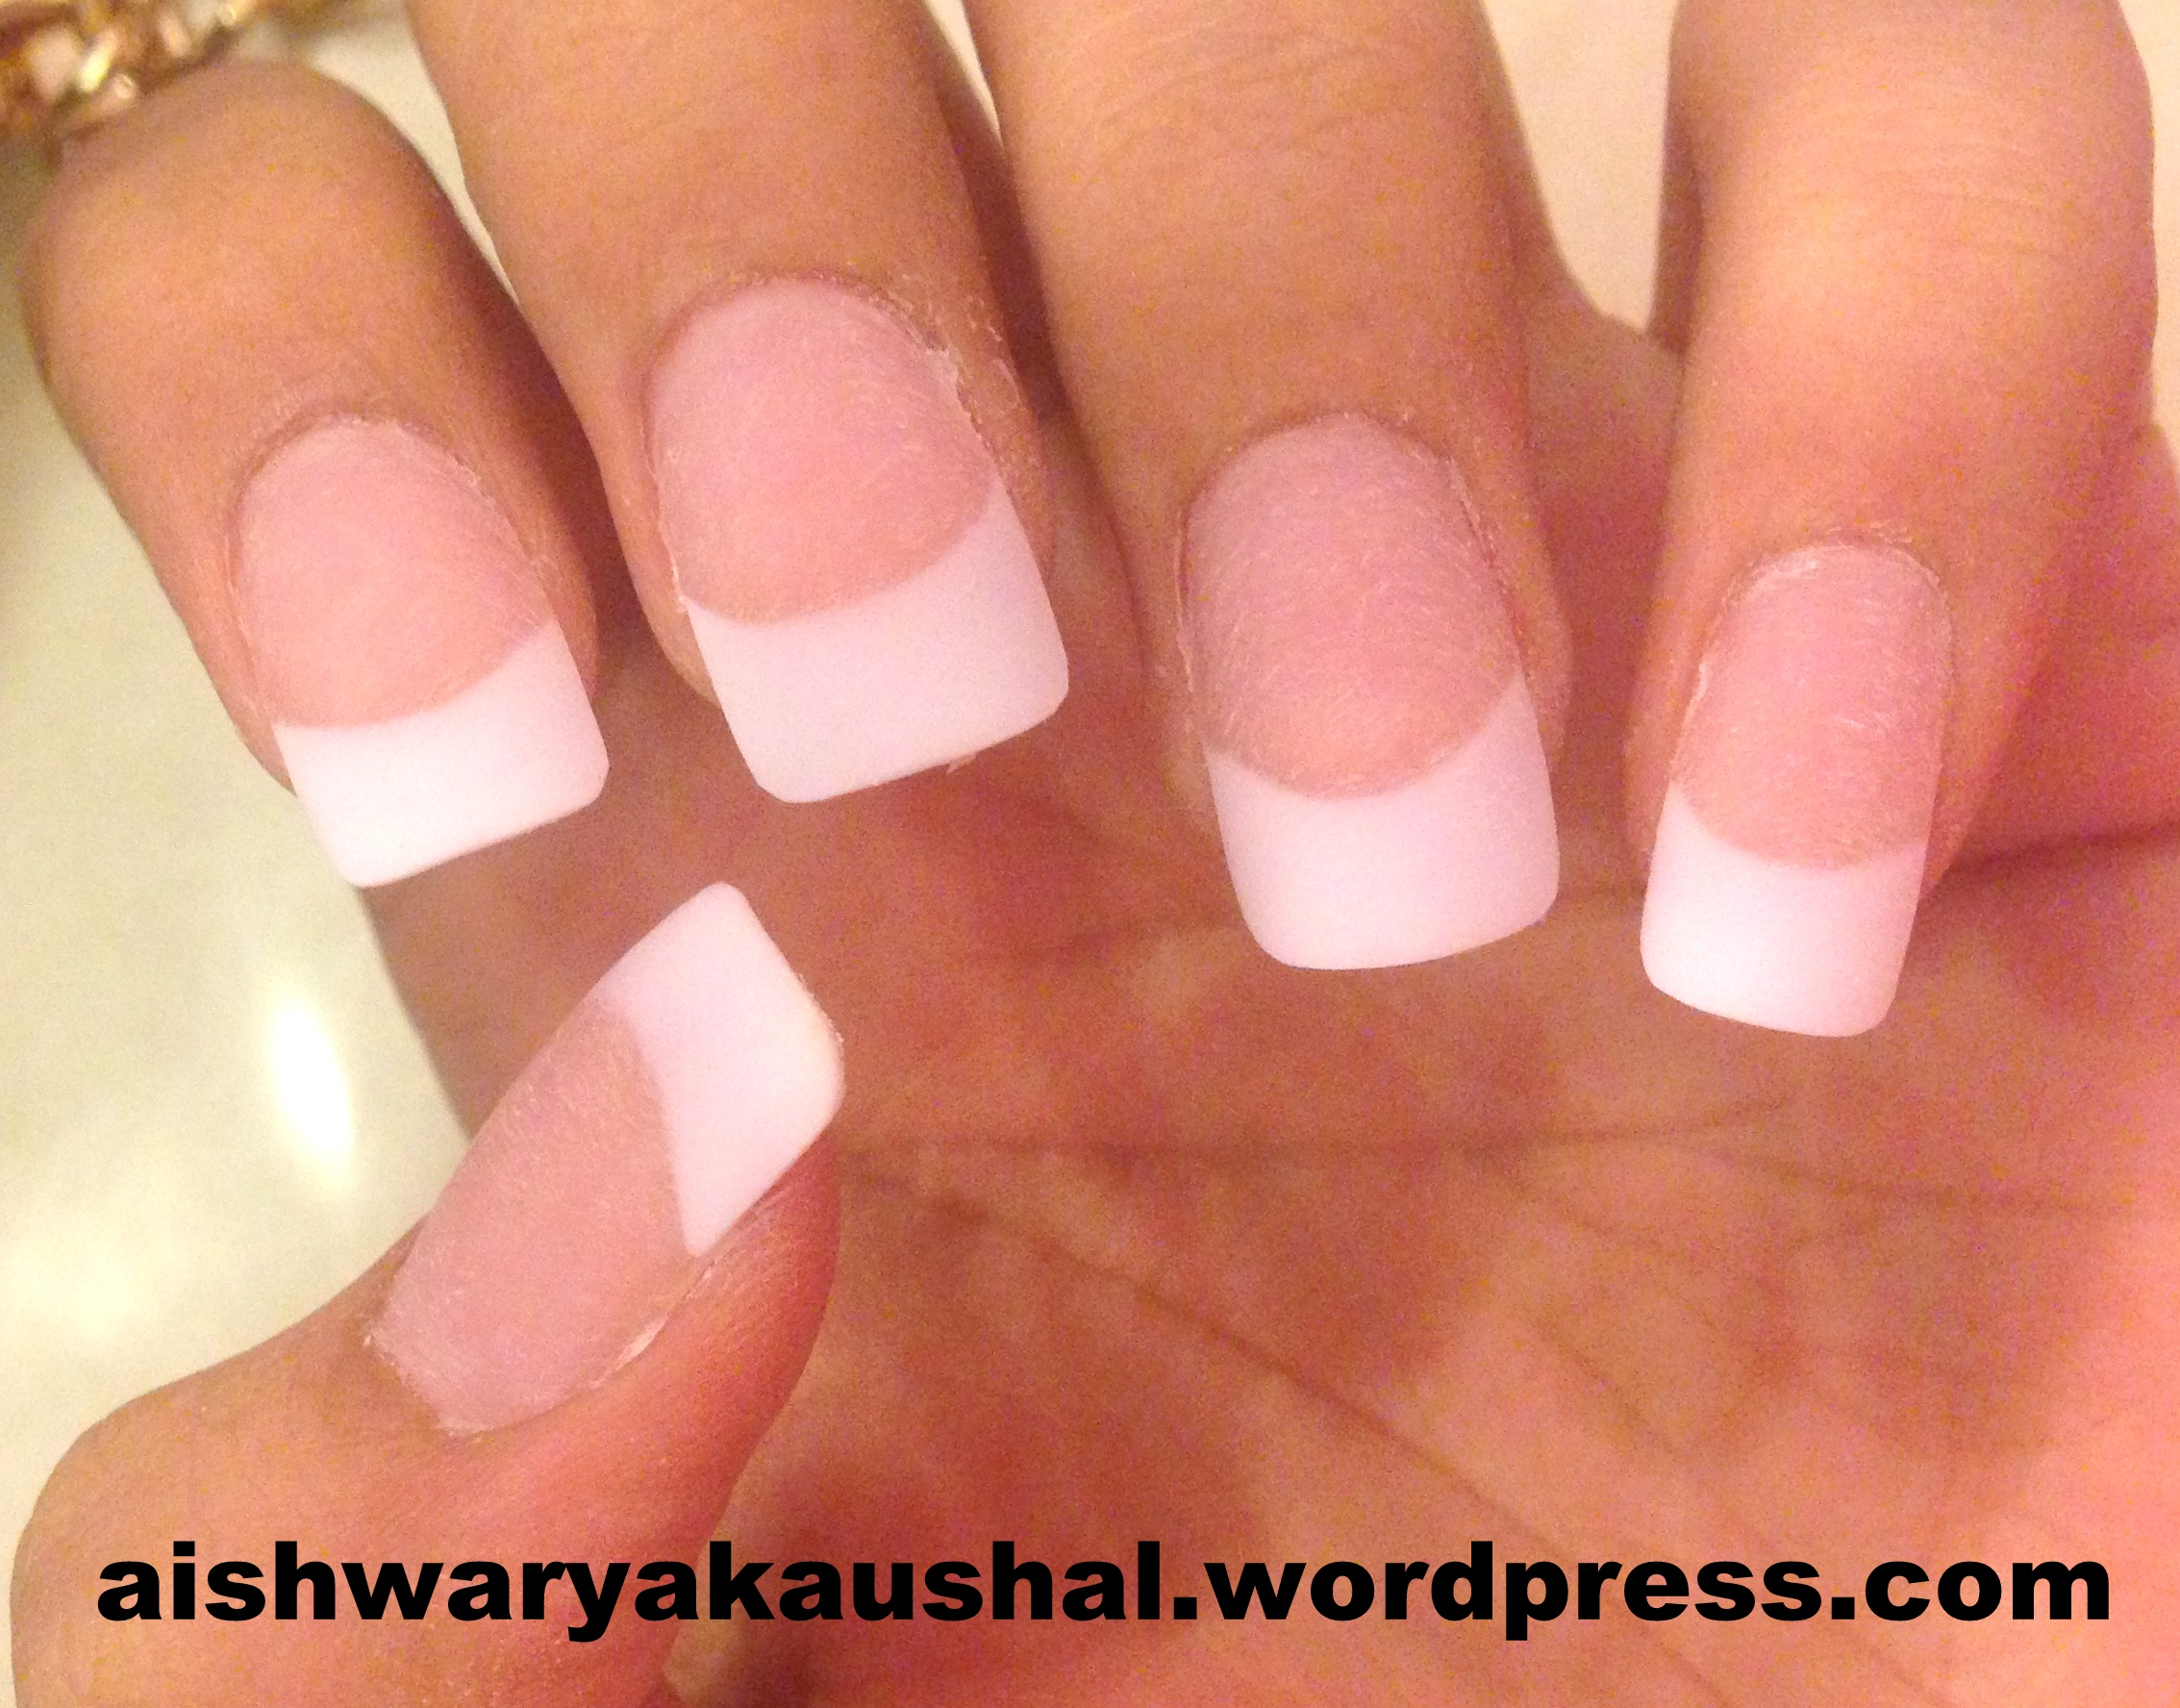 My Experience With Acrylic/Fake Nails And Gel Manicure! – Glamour ...